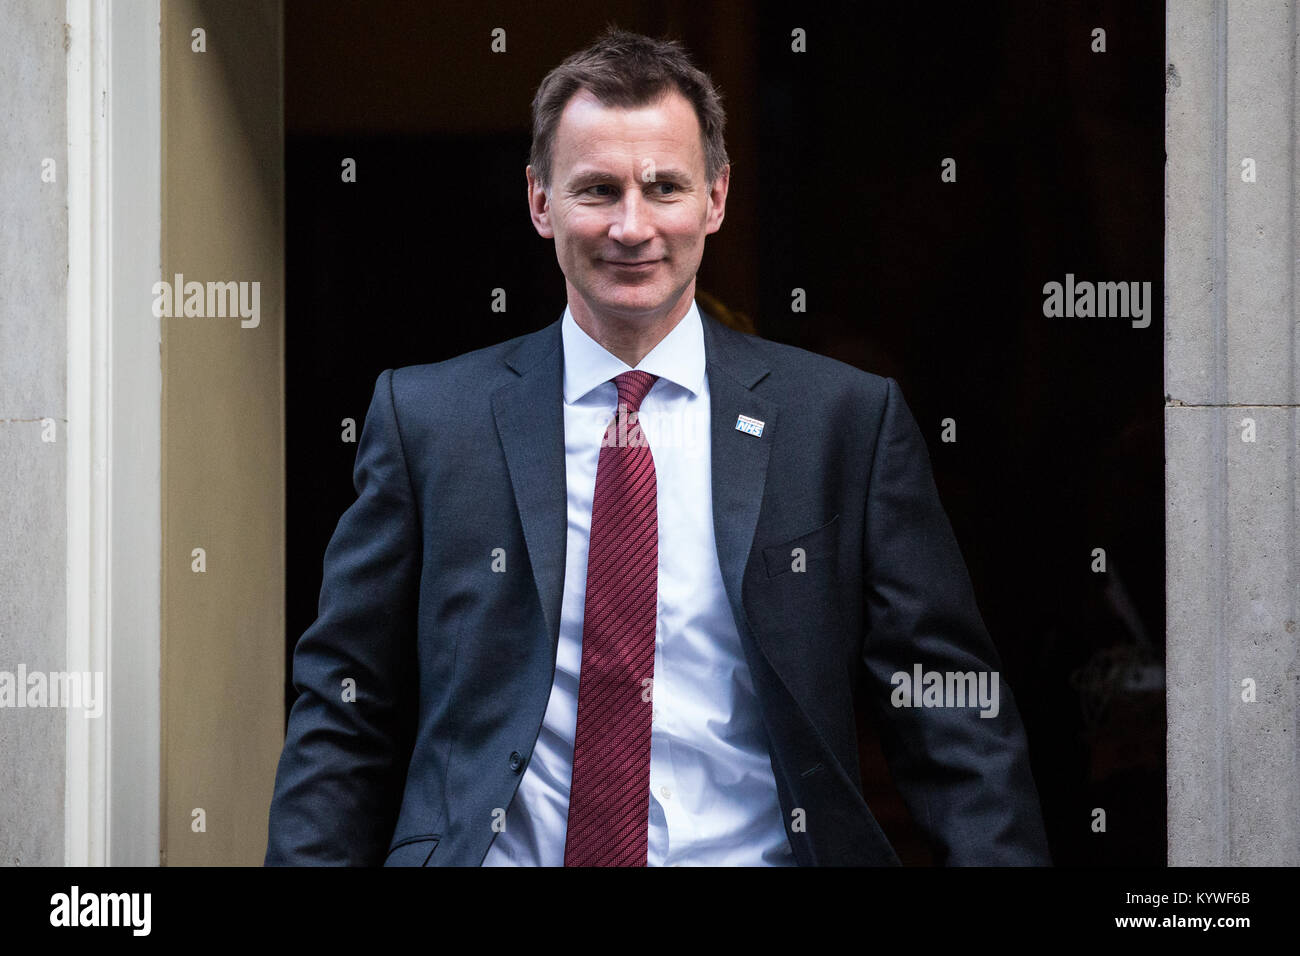 London, UK. 16th Jan, 2018. Jeremy Hunt MP, Secretary of State for Health and Social Care, leaves 10 Downing Street Stock Photo